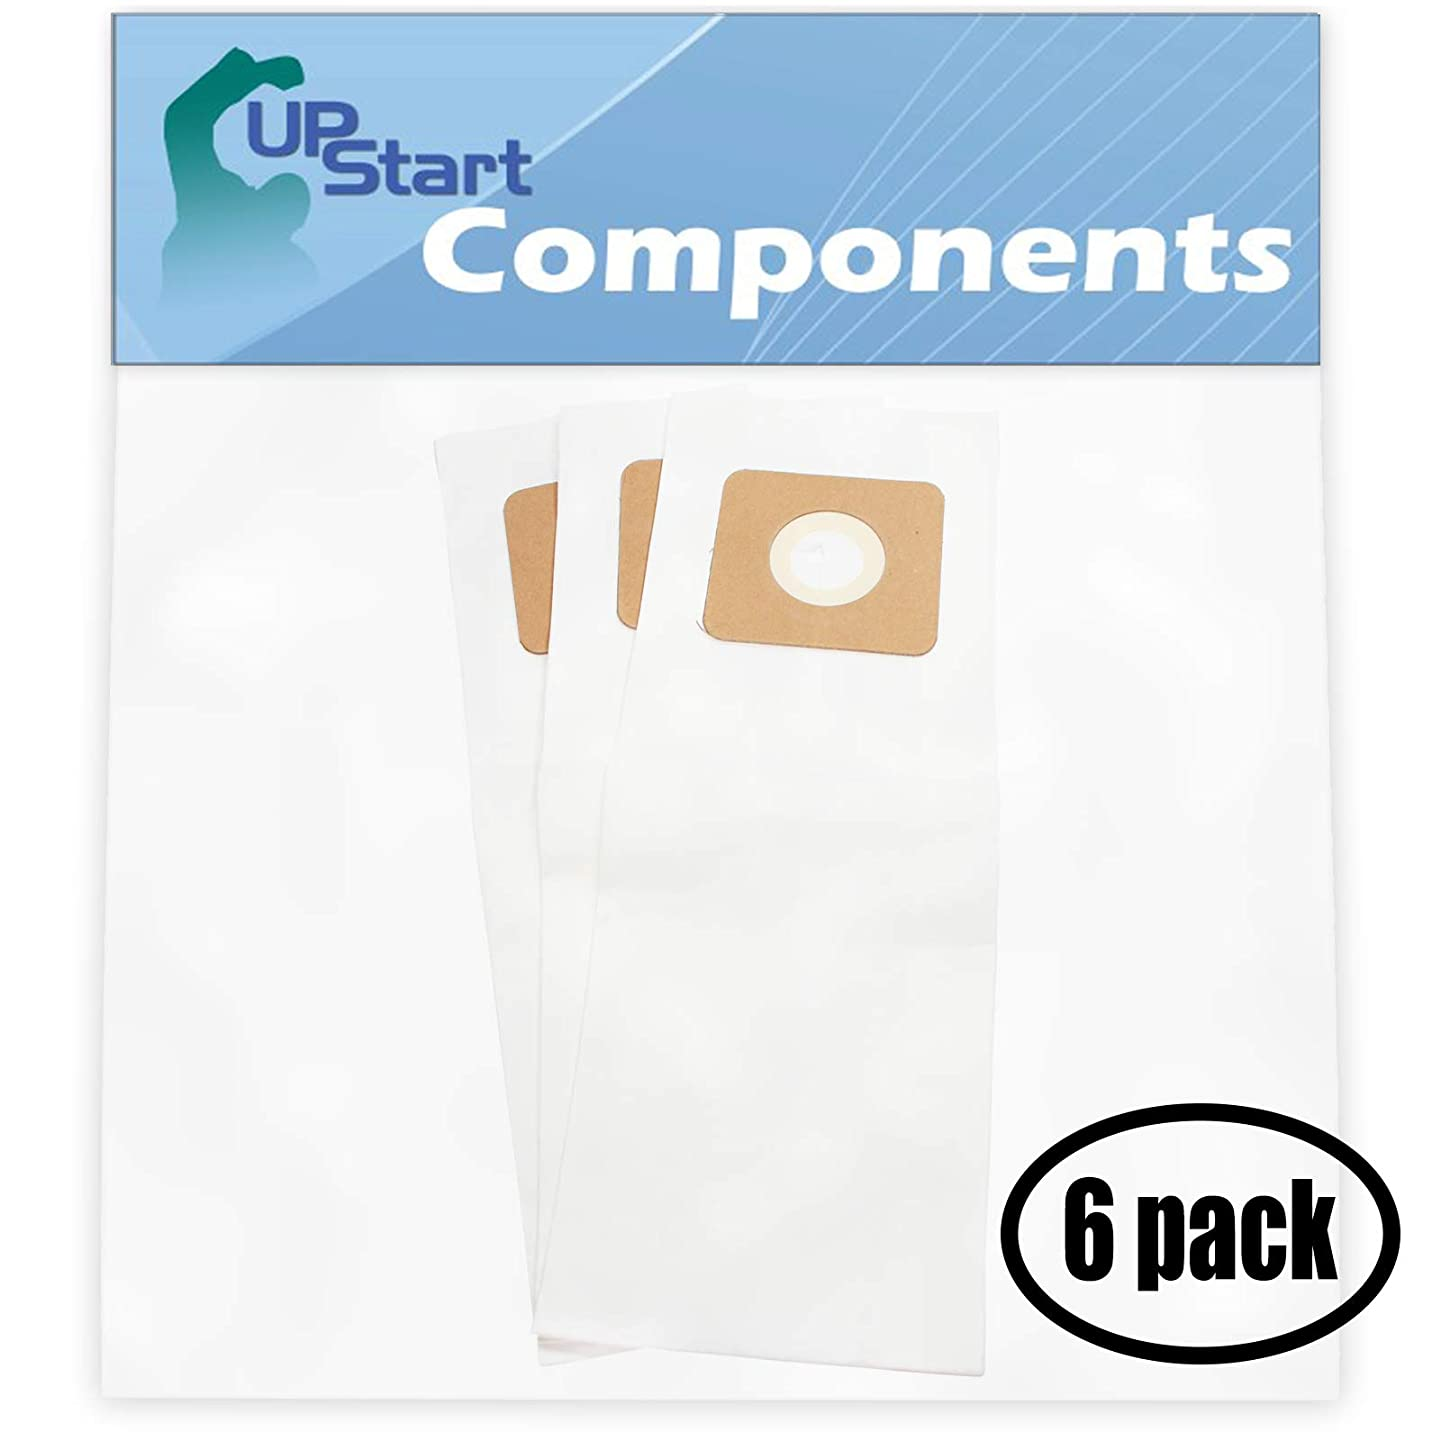 UpStart Battery 18 Replacement for Panasonic MC-6900 Vacuum Bags with 7-Piece Micro Vacuum Attachment Kit - Compatible with Panasonic Type U, U-3, U-6 Vacuum Bags (6-Pack, 3 Bags per Pack)